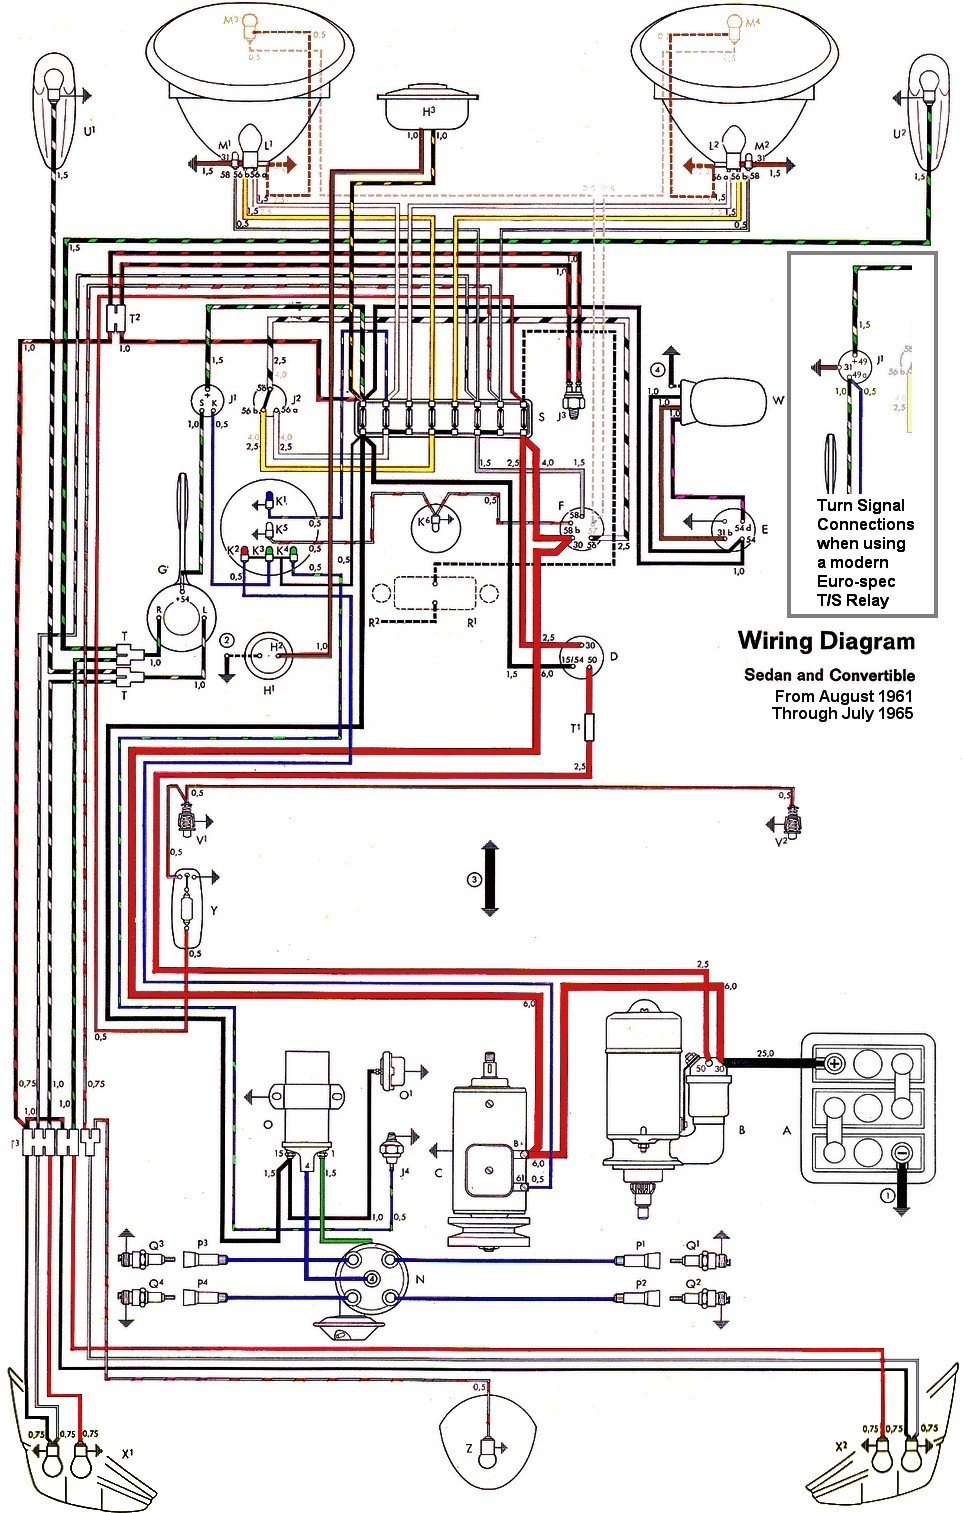 bug_62 65withinset wiring diagram vw beetle sedan and convertible 1961 1965 vw vw beach buggy wiring diagram at pacquiaovsvargaslive.co